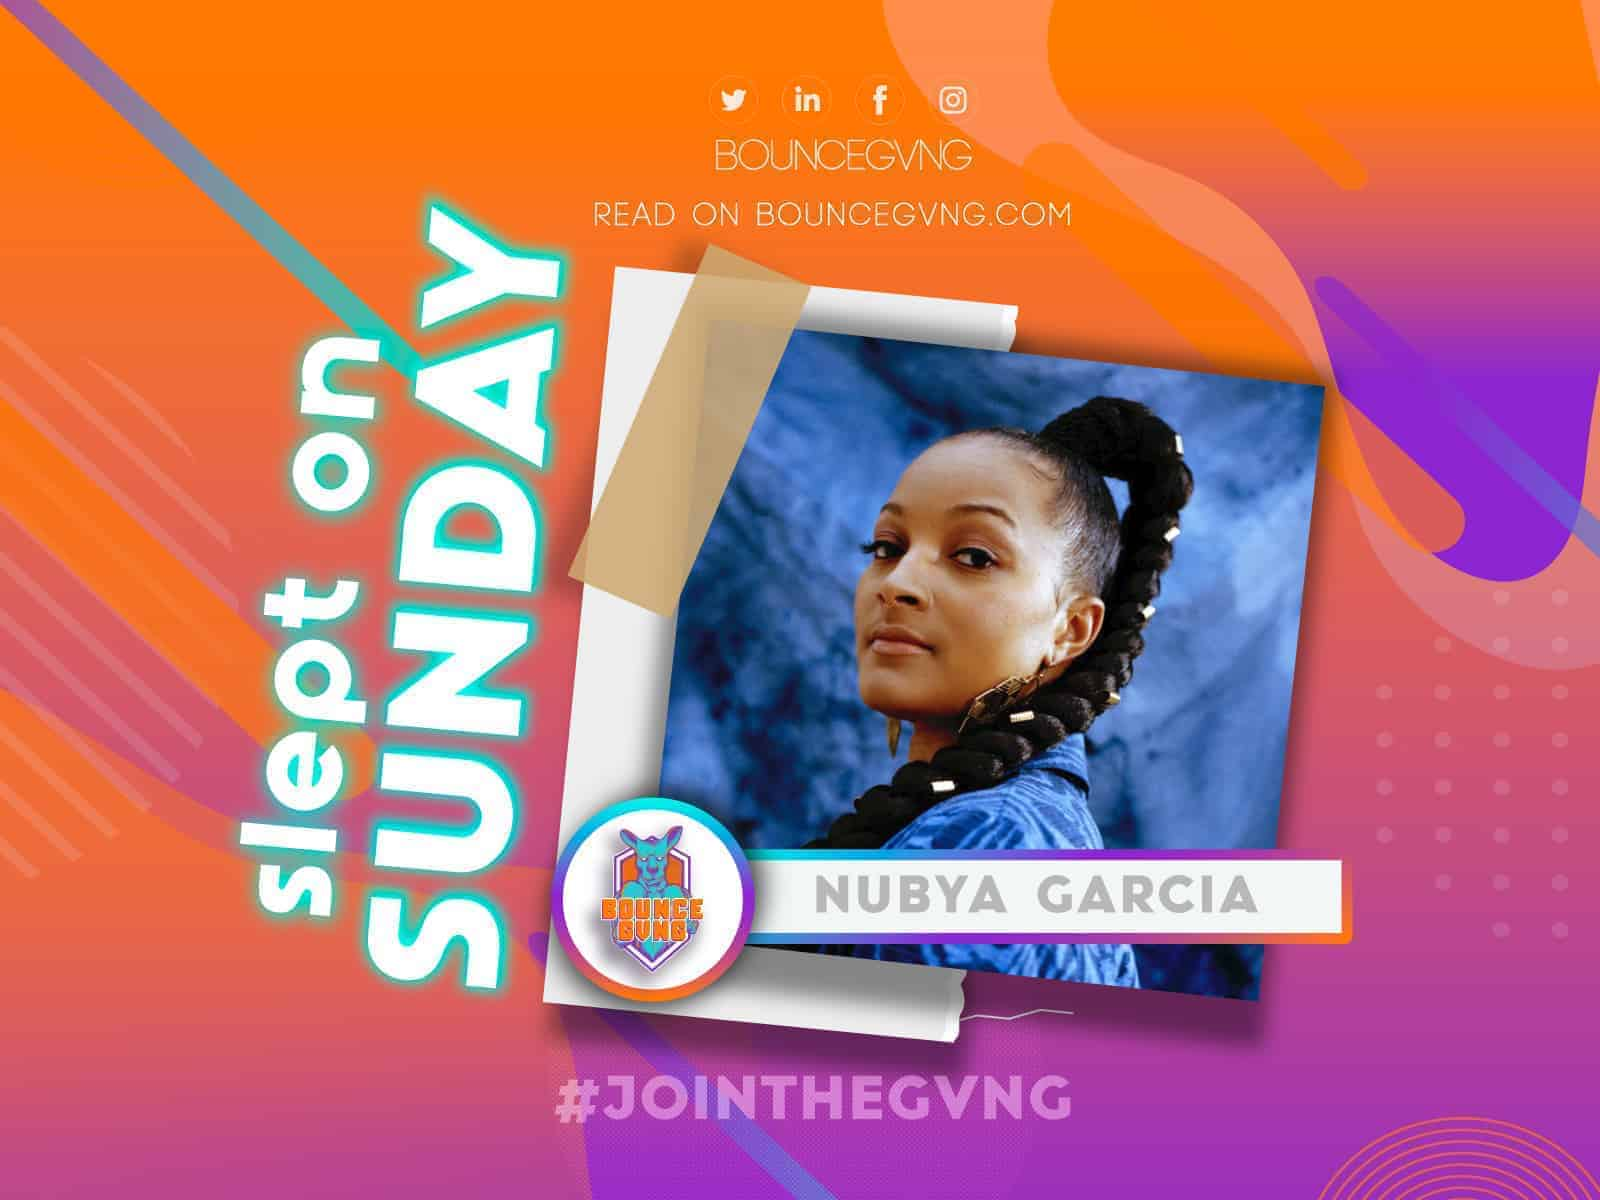 Nubya Garcia Slept On Sunday